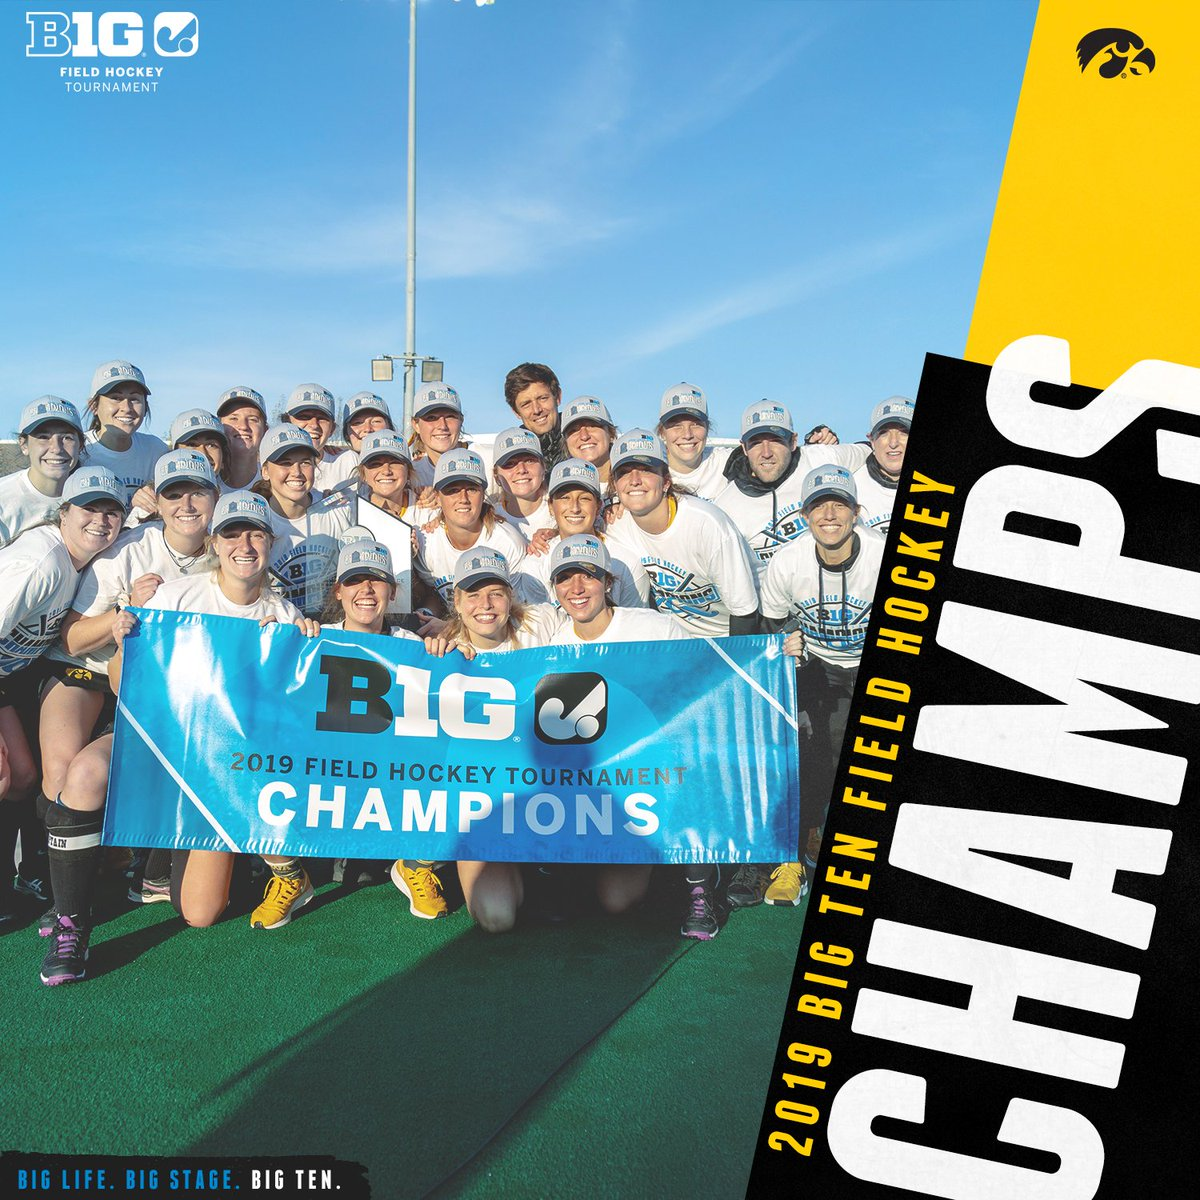 The #Hawkeyes are your 2019 Big Ten Field Hockey Tournament Champions! Iowa scored 26 seconds into OT to claim the programs 6th tournament title. #B1GFH